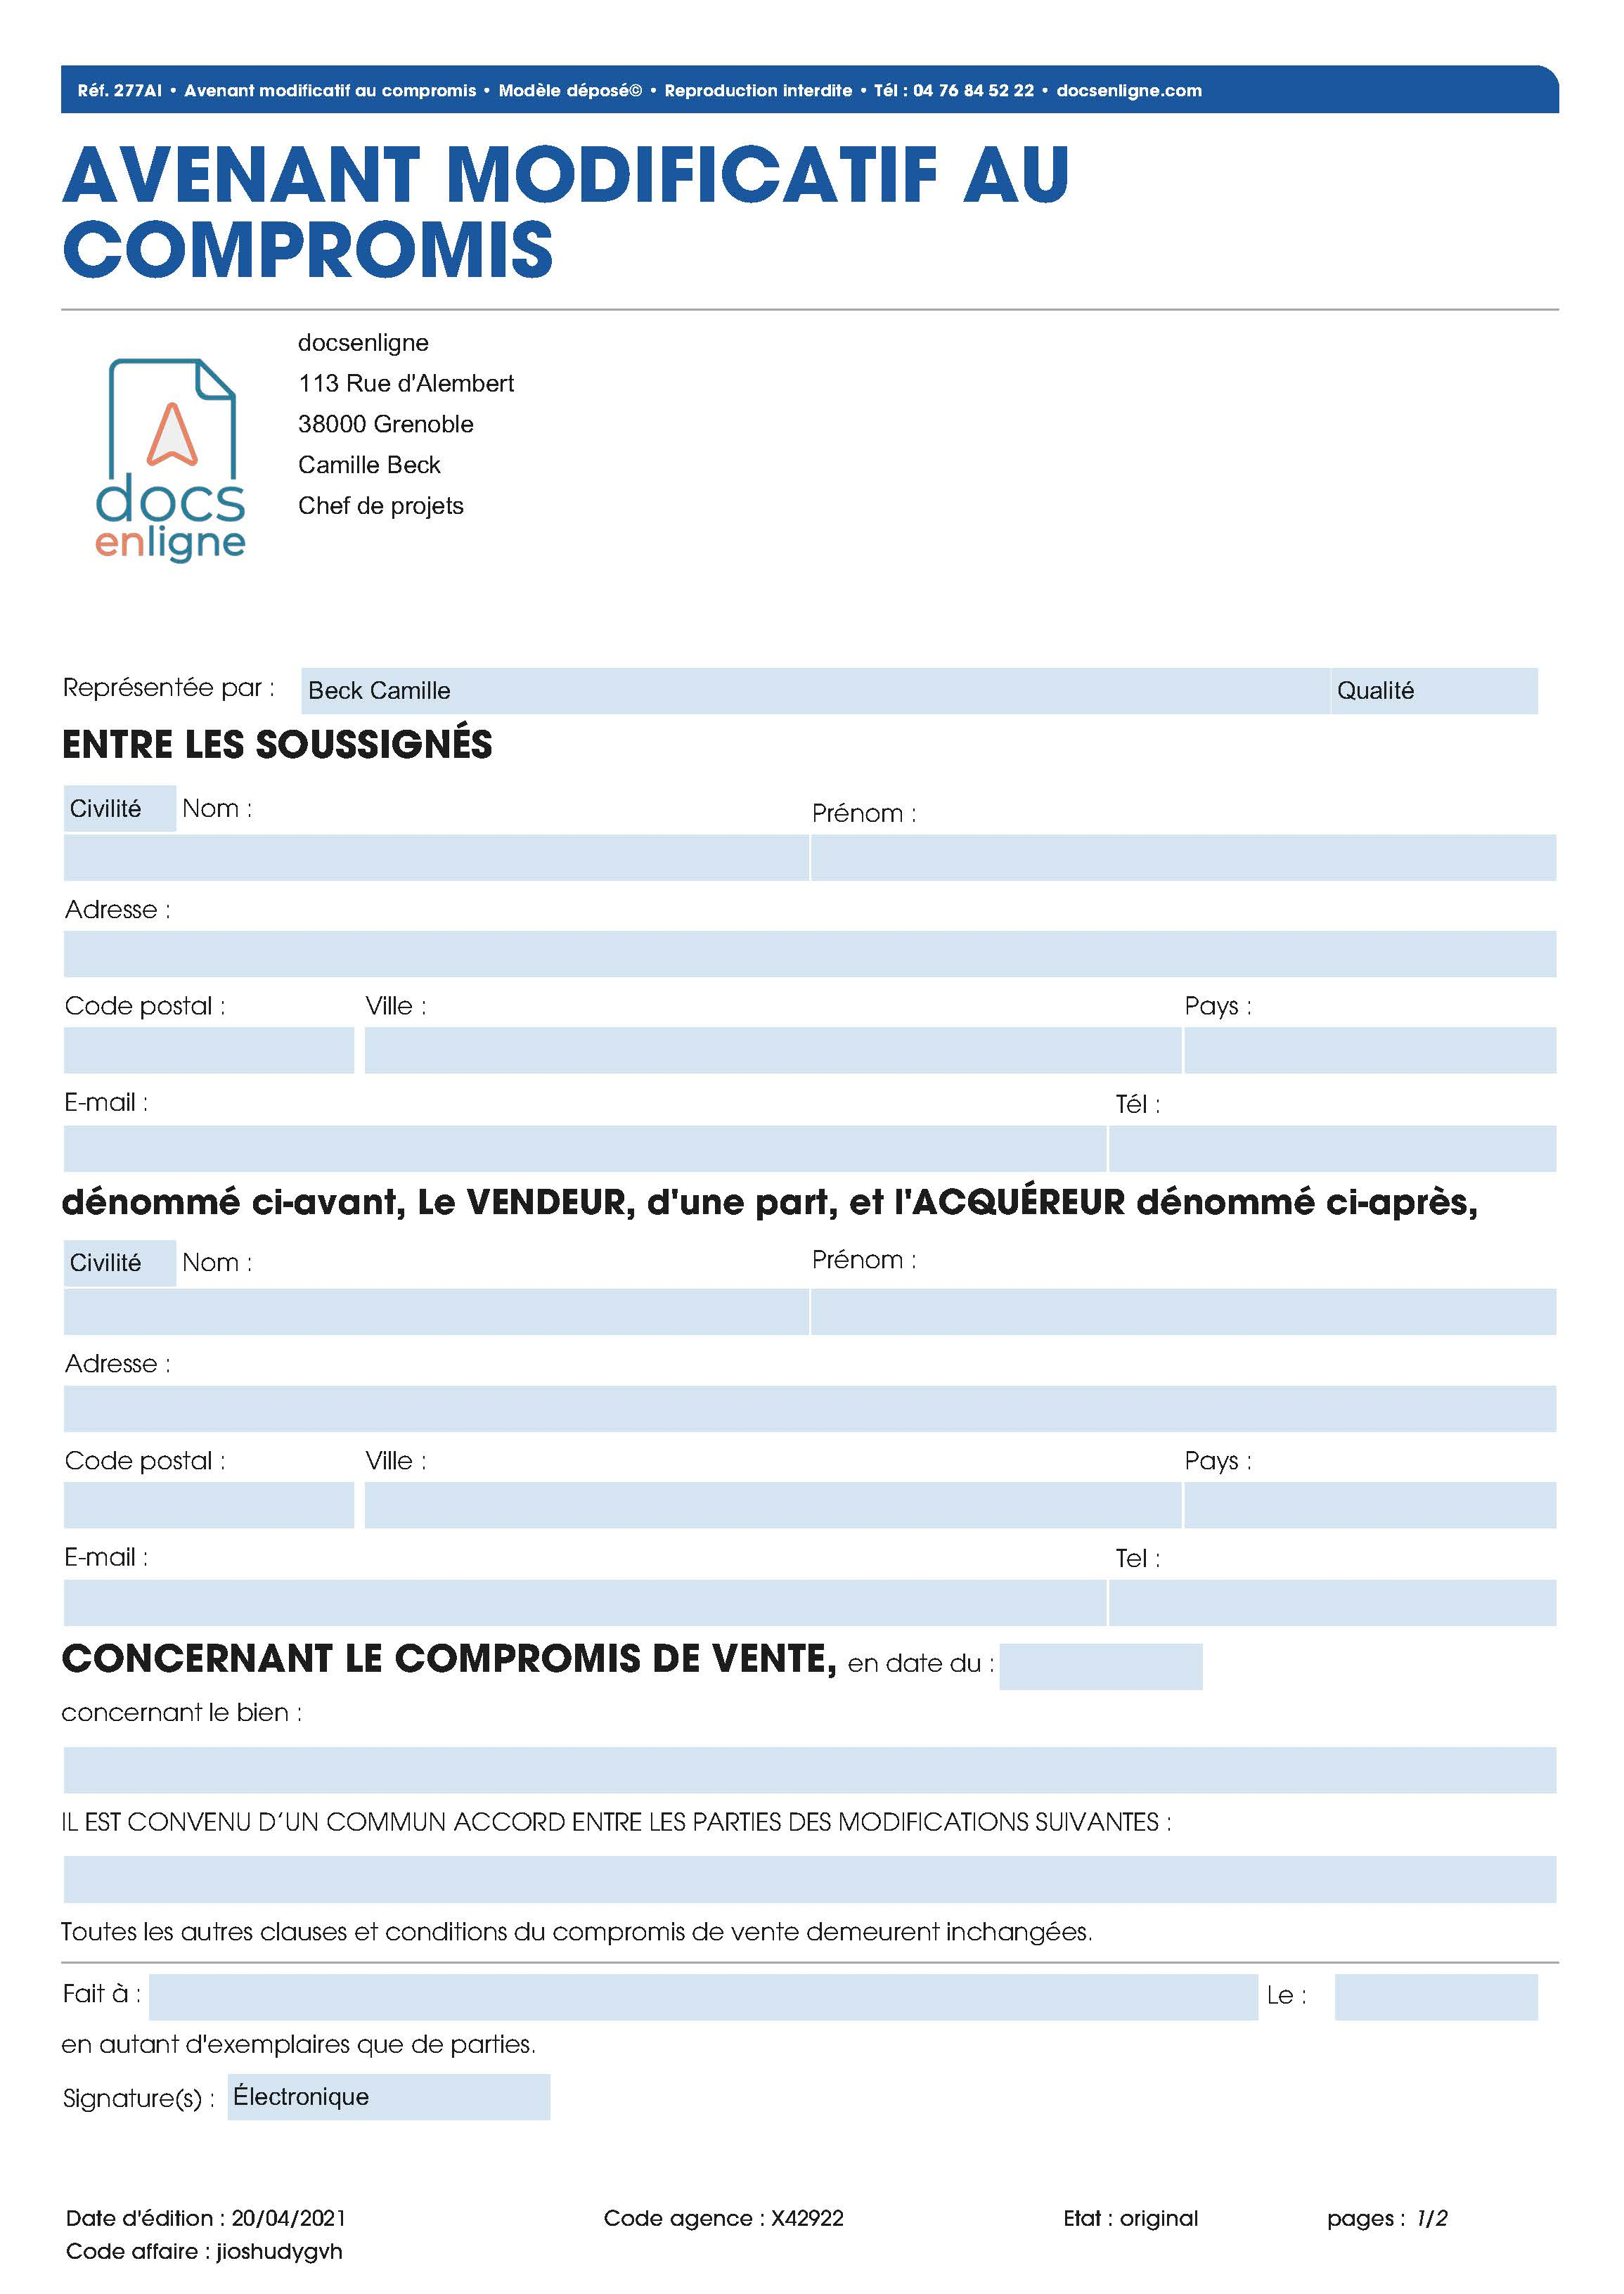 Avenant modificatif au compromis